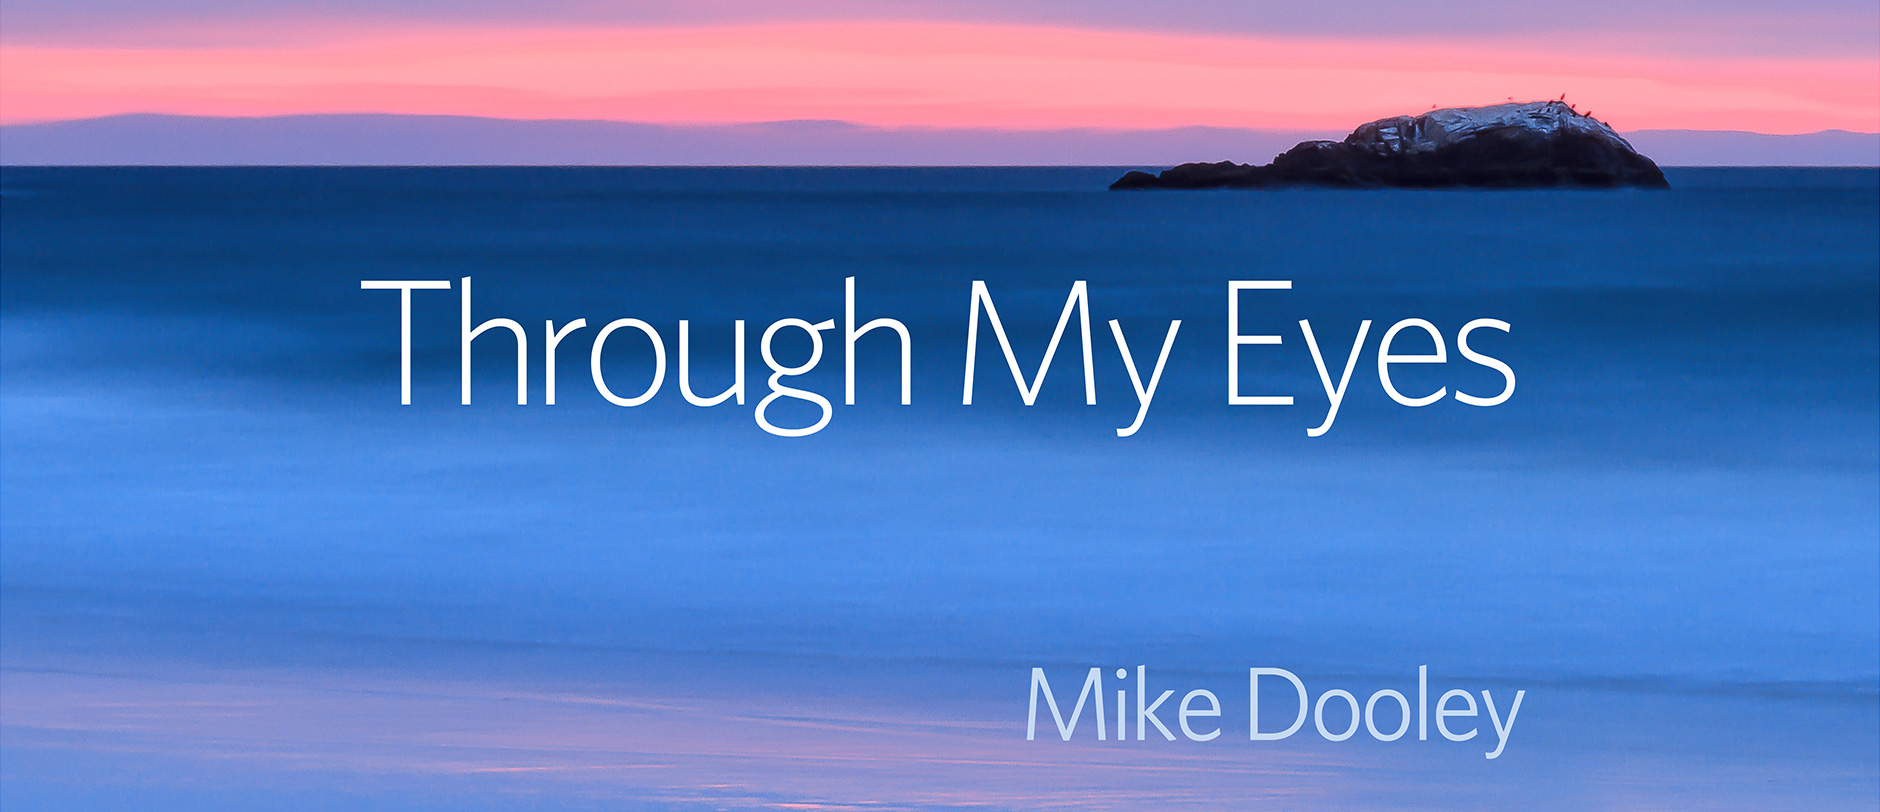 Through My Eyes by Mike Dooley